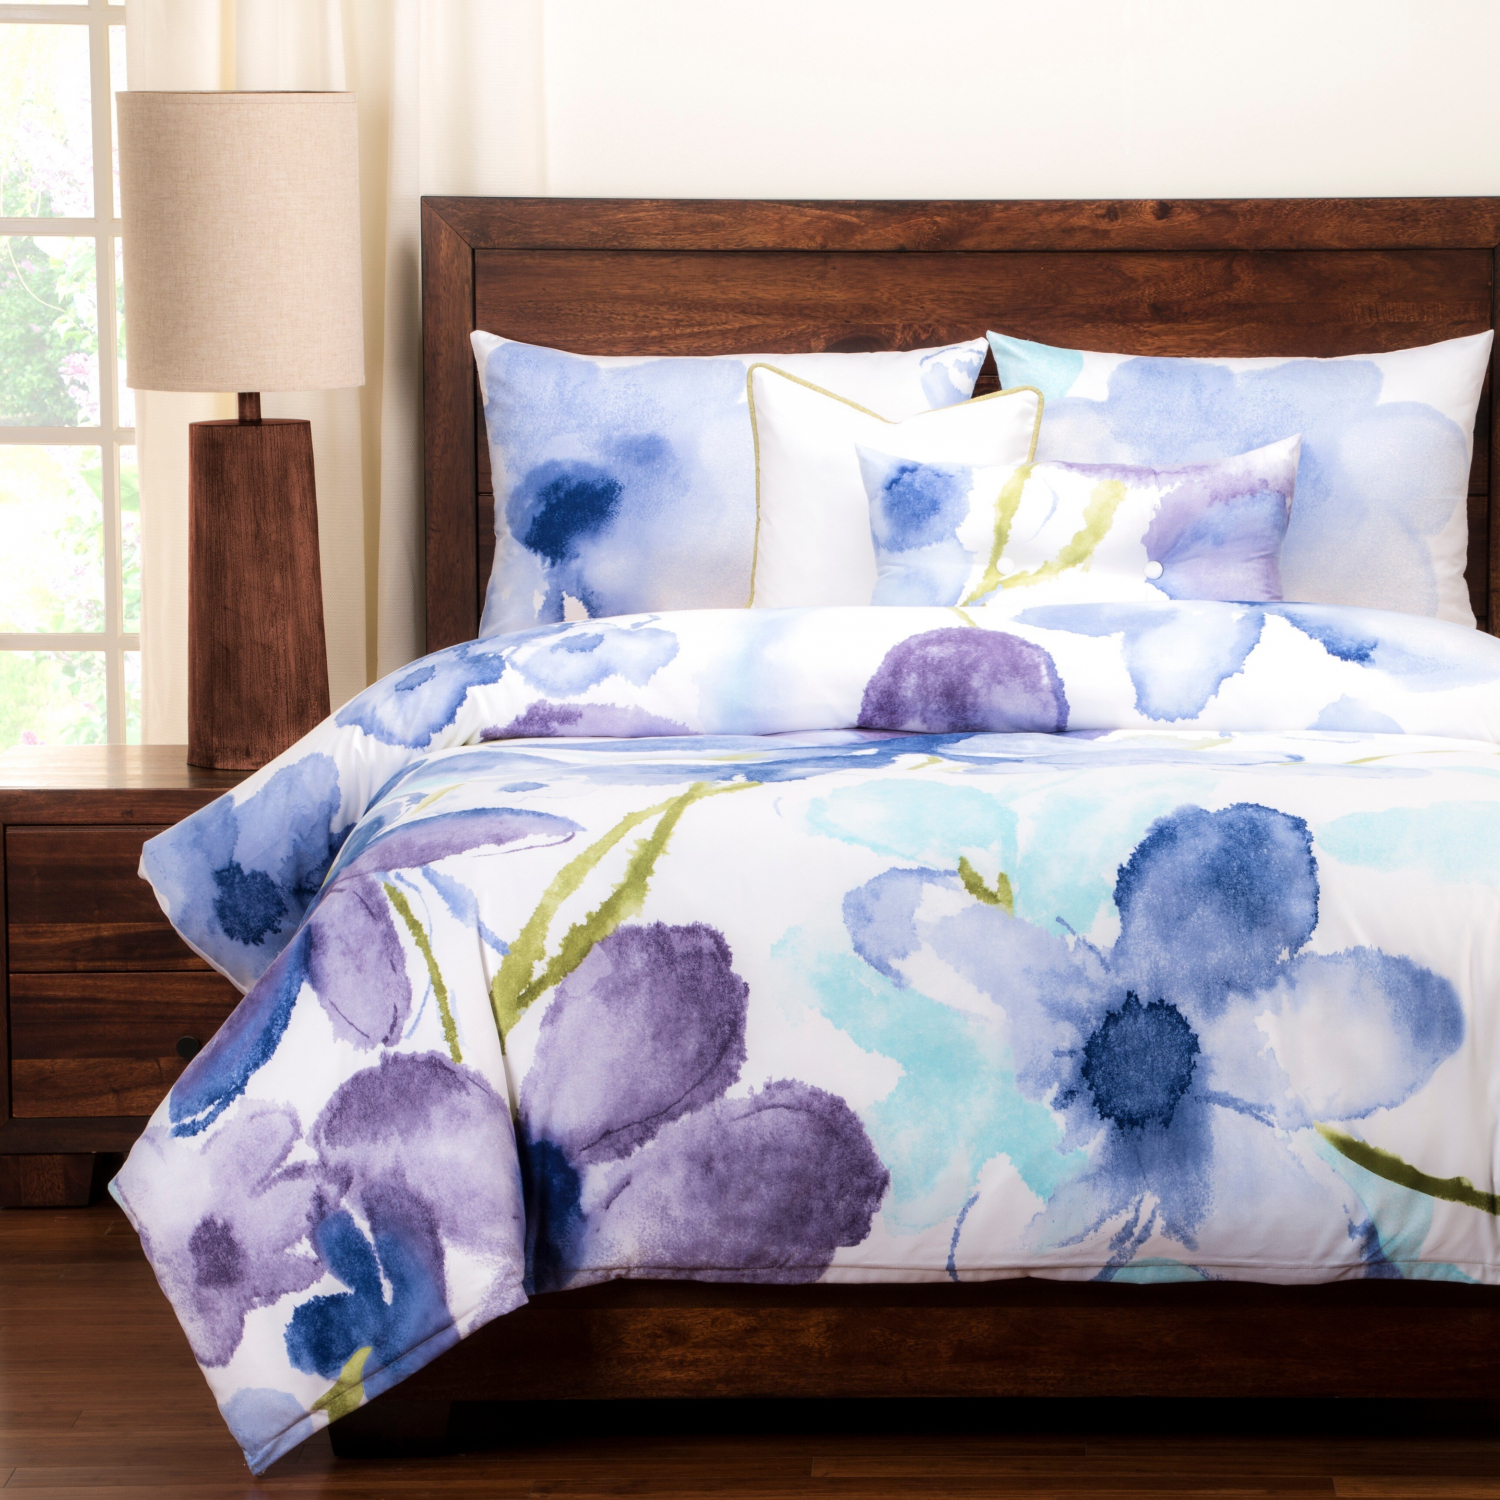 Bed Duvet Set Fl Bedding 6 Piece